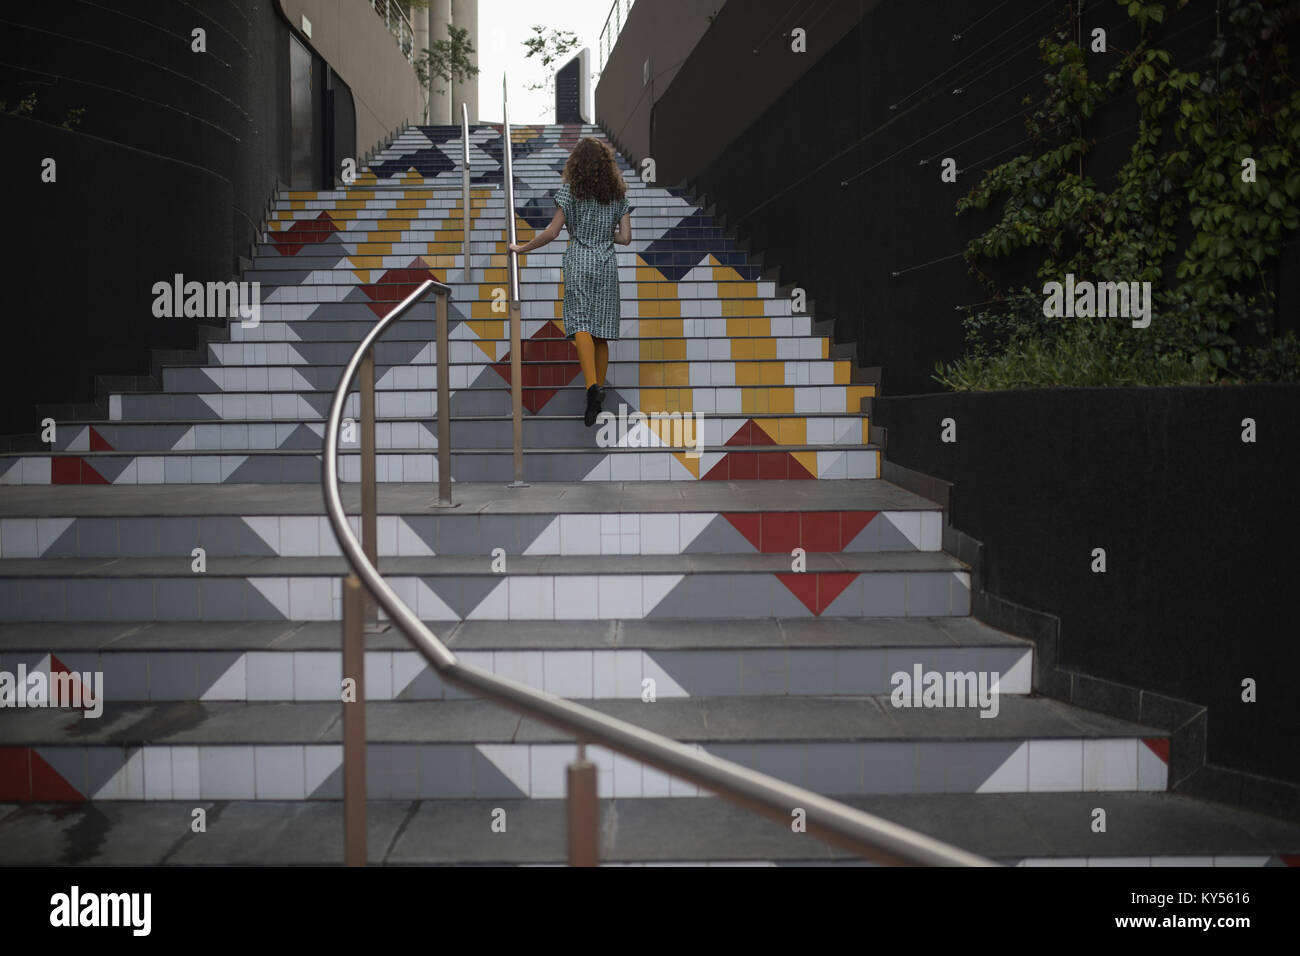 Painted Stairs Stock Photos Painted Stairs Stock Images Alamy